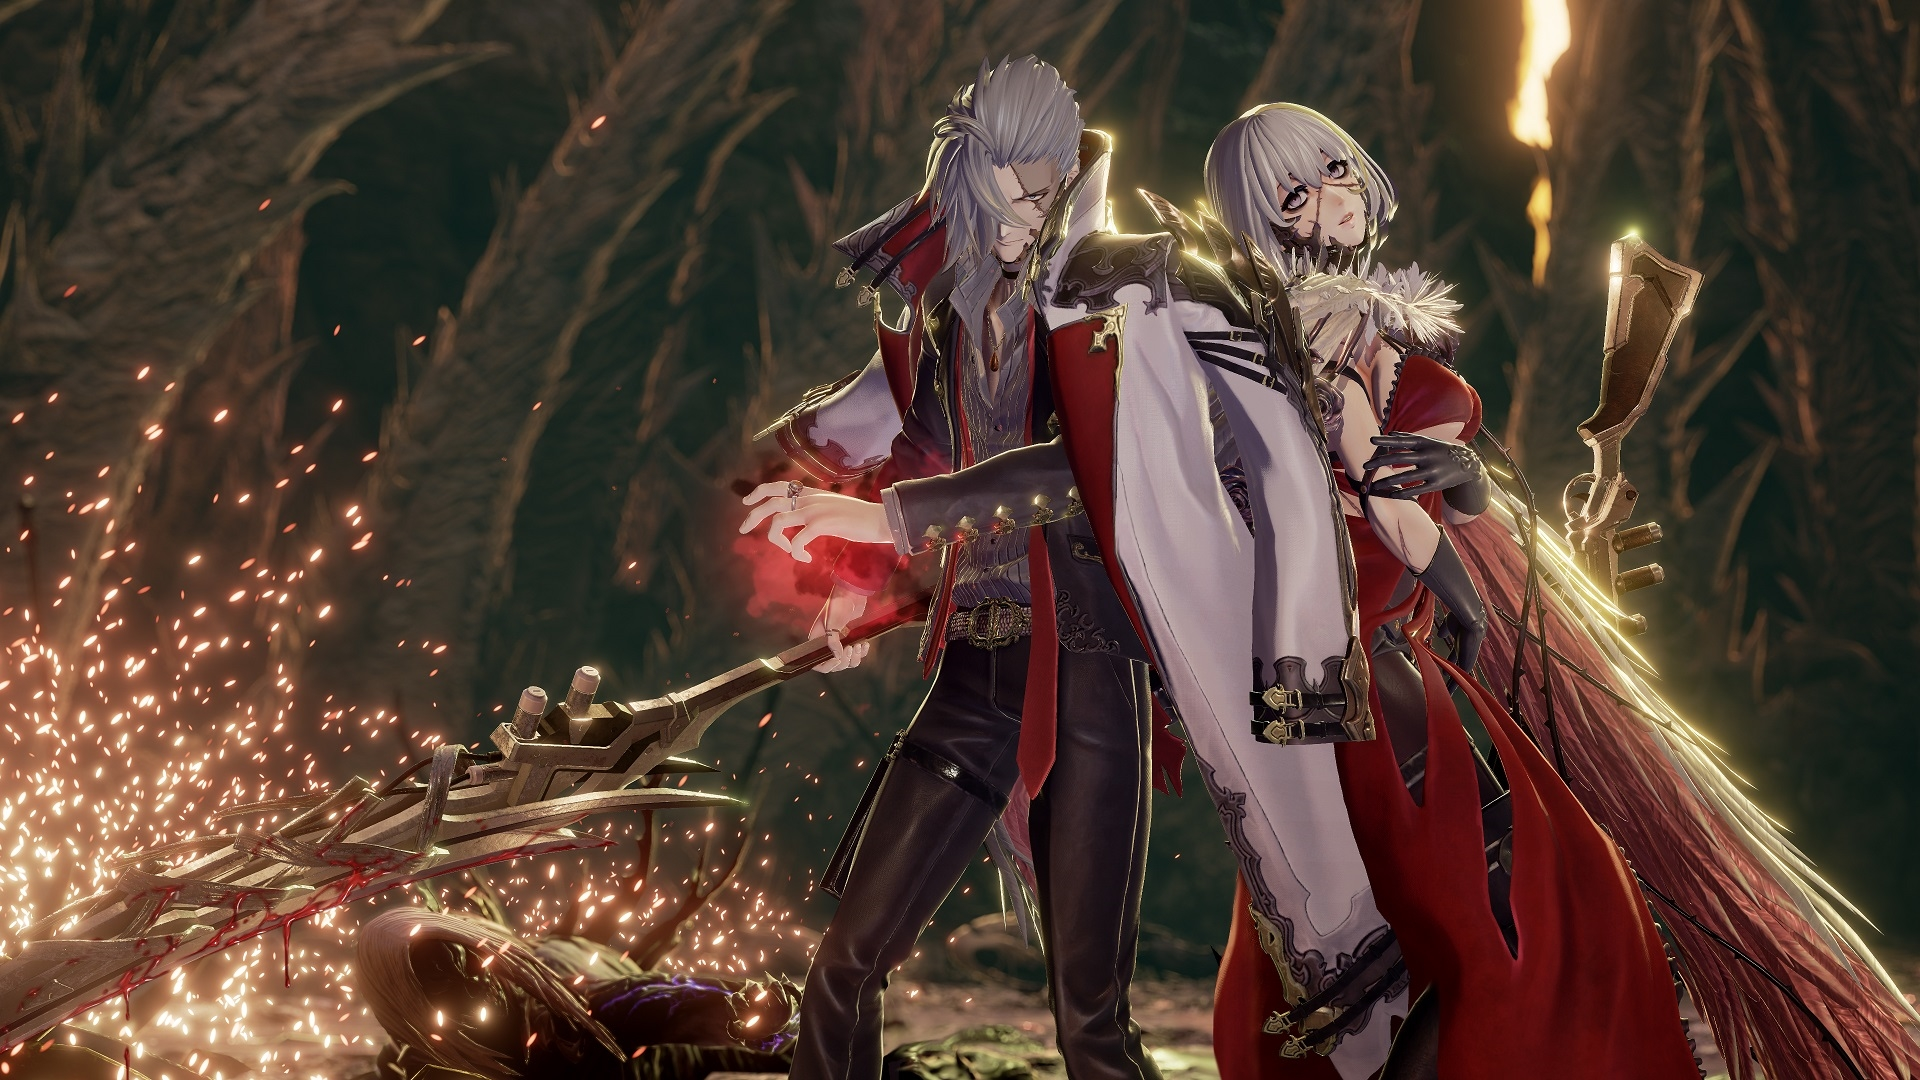 Code Vein Gets Details on New Characters and Weapons New